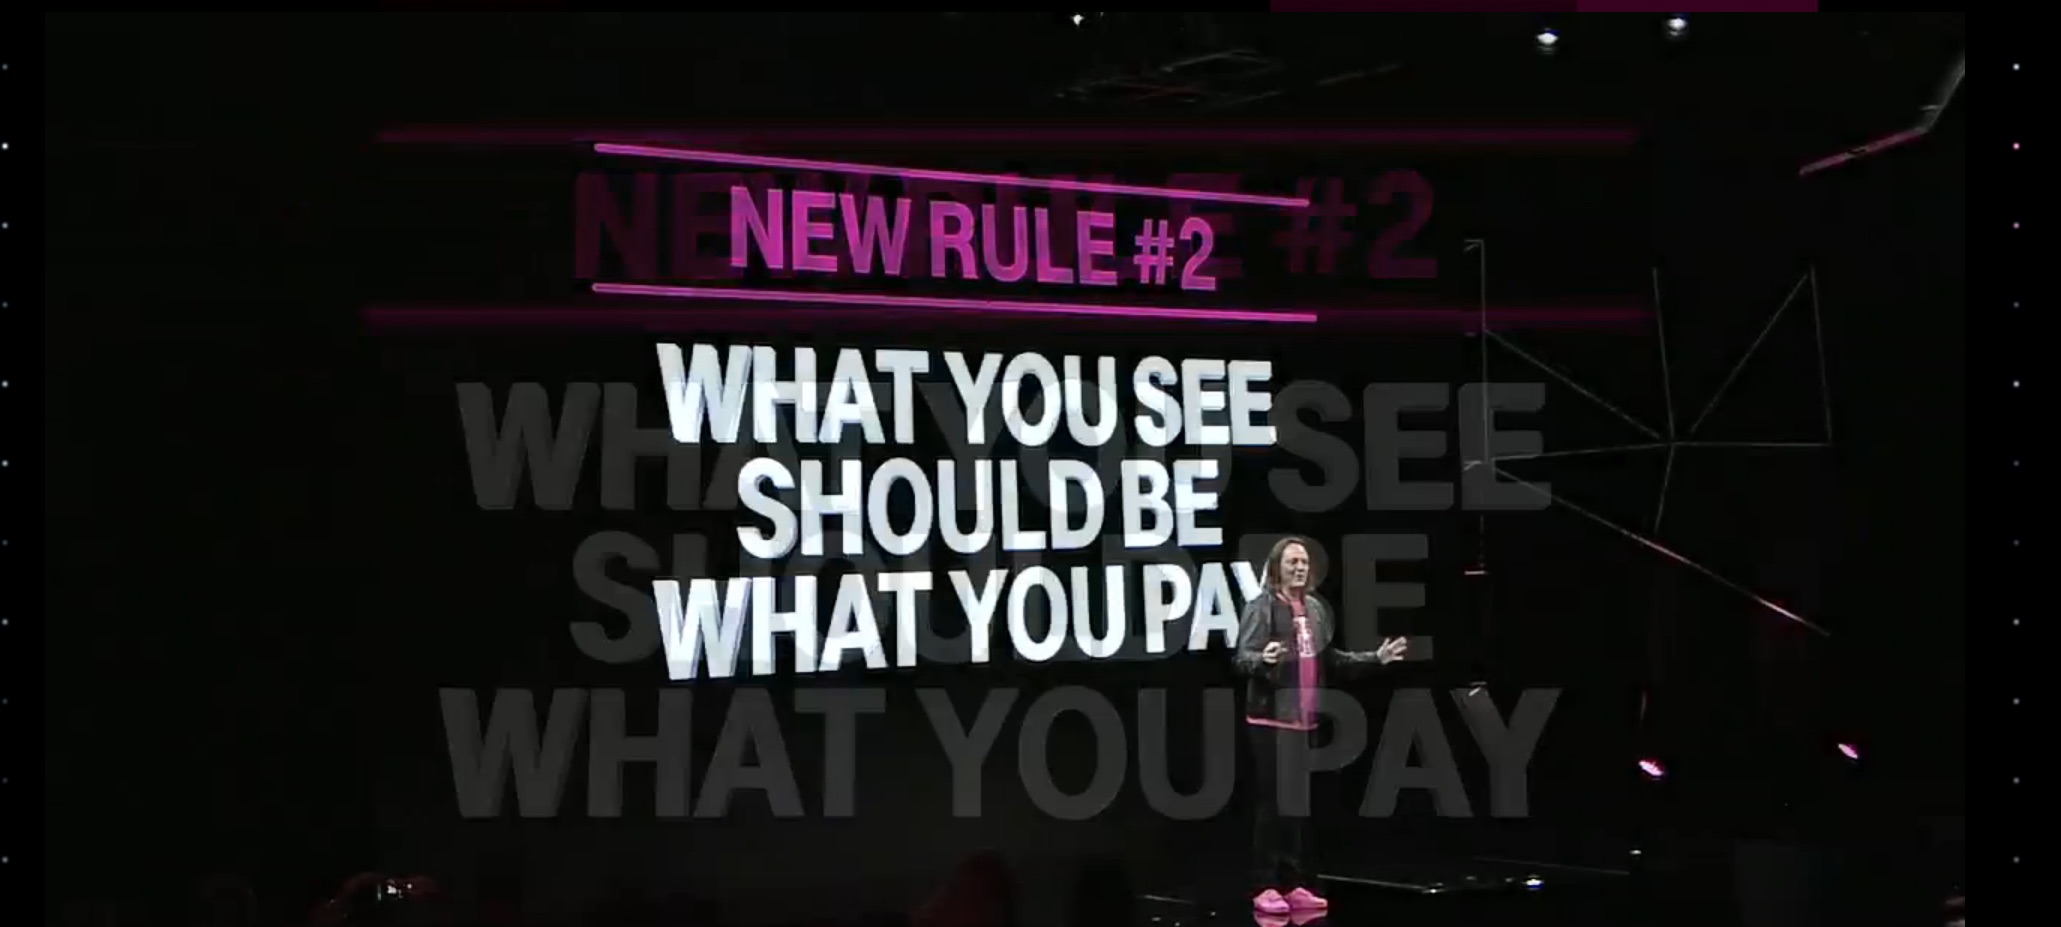 T-Mobile Will Include Taxes And Fees In Advertised Prices, Refund Light Data Users